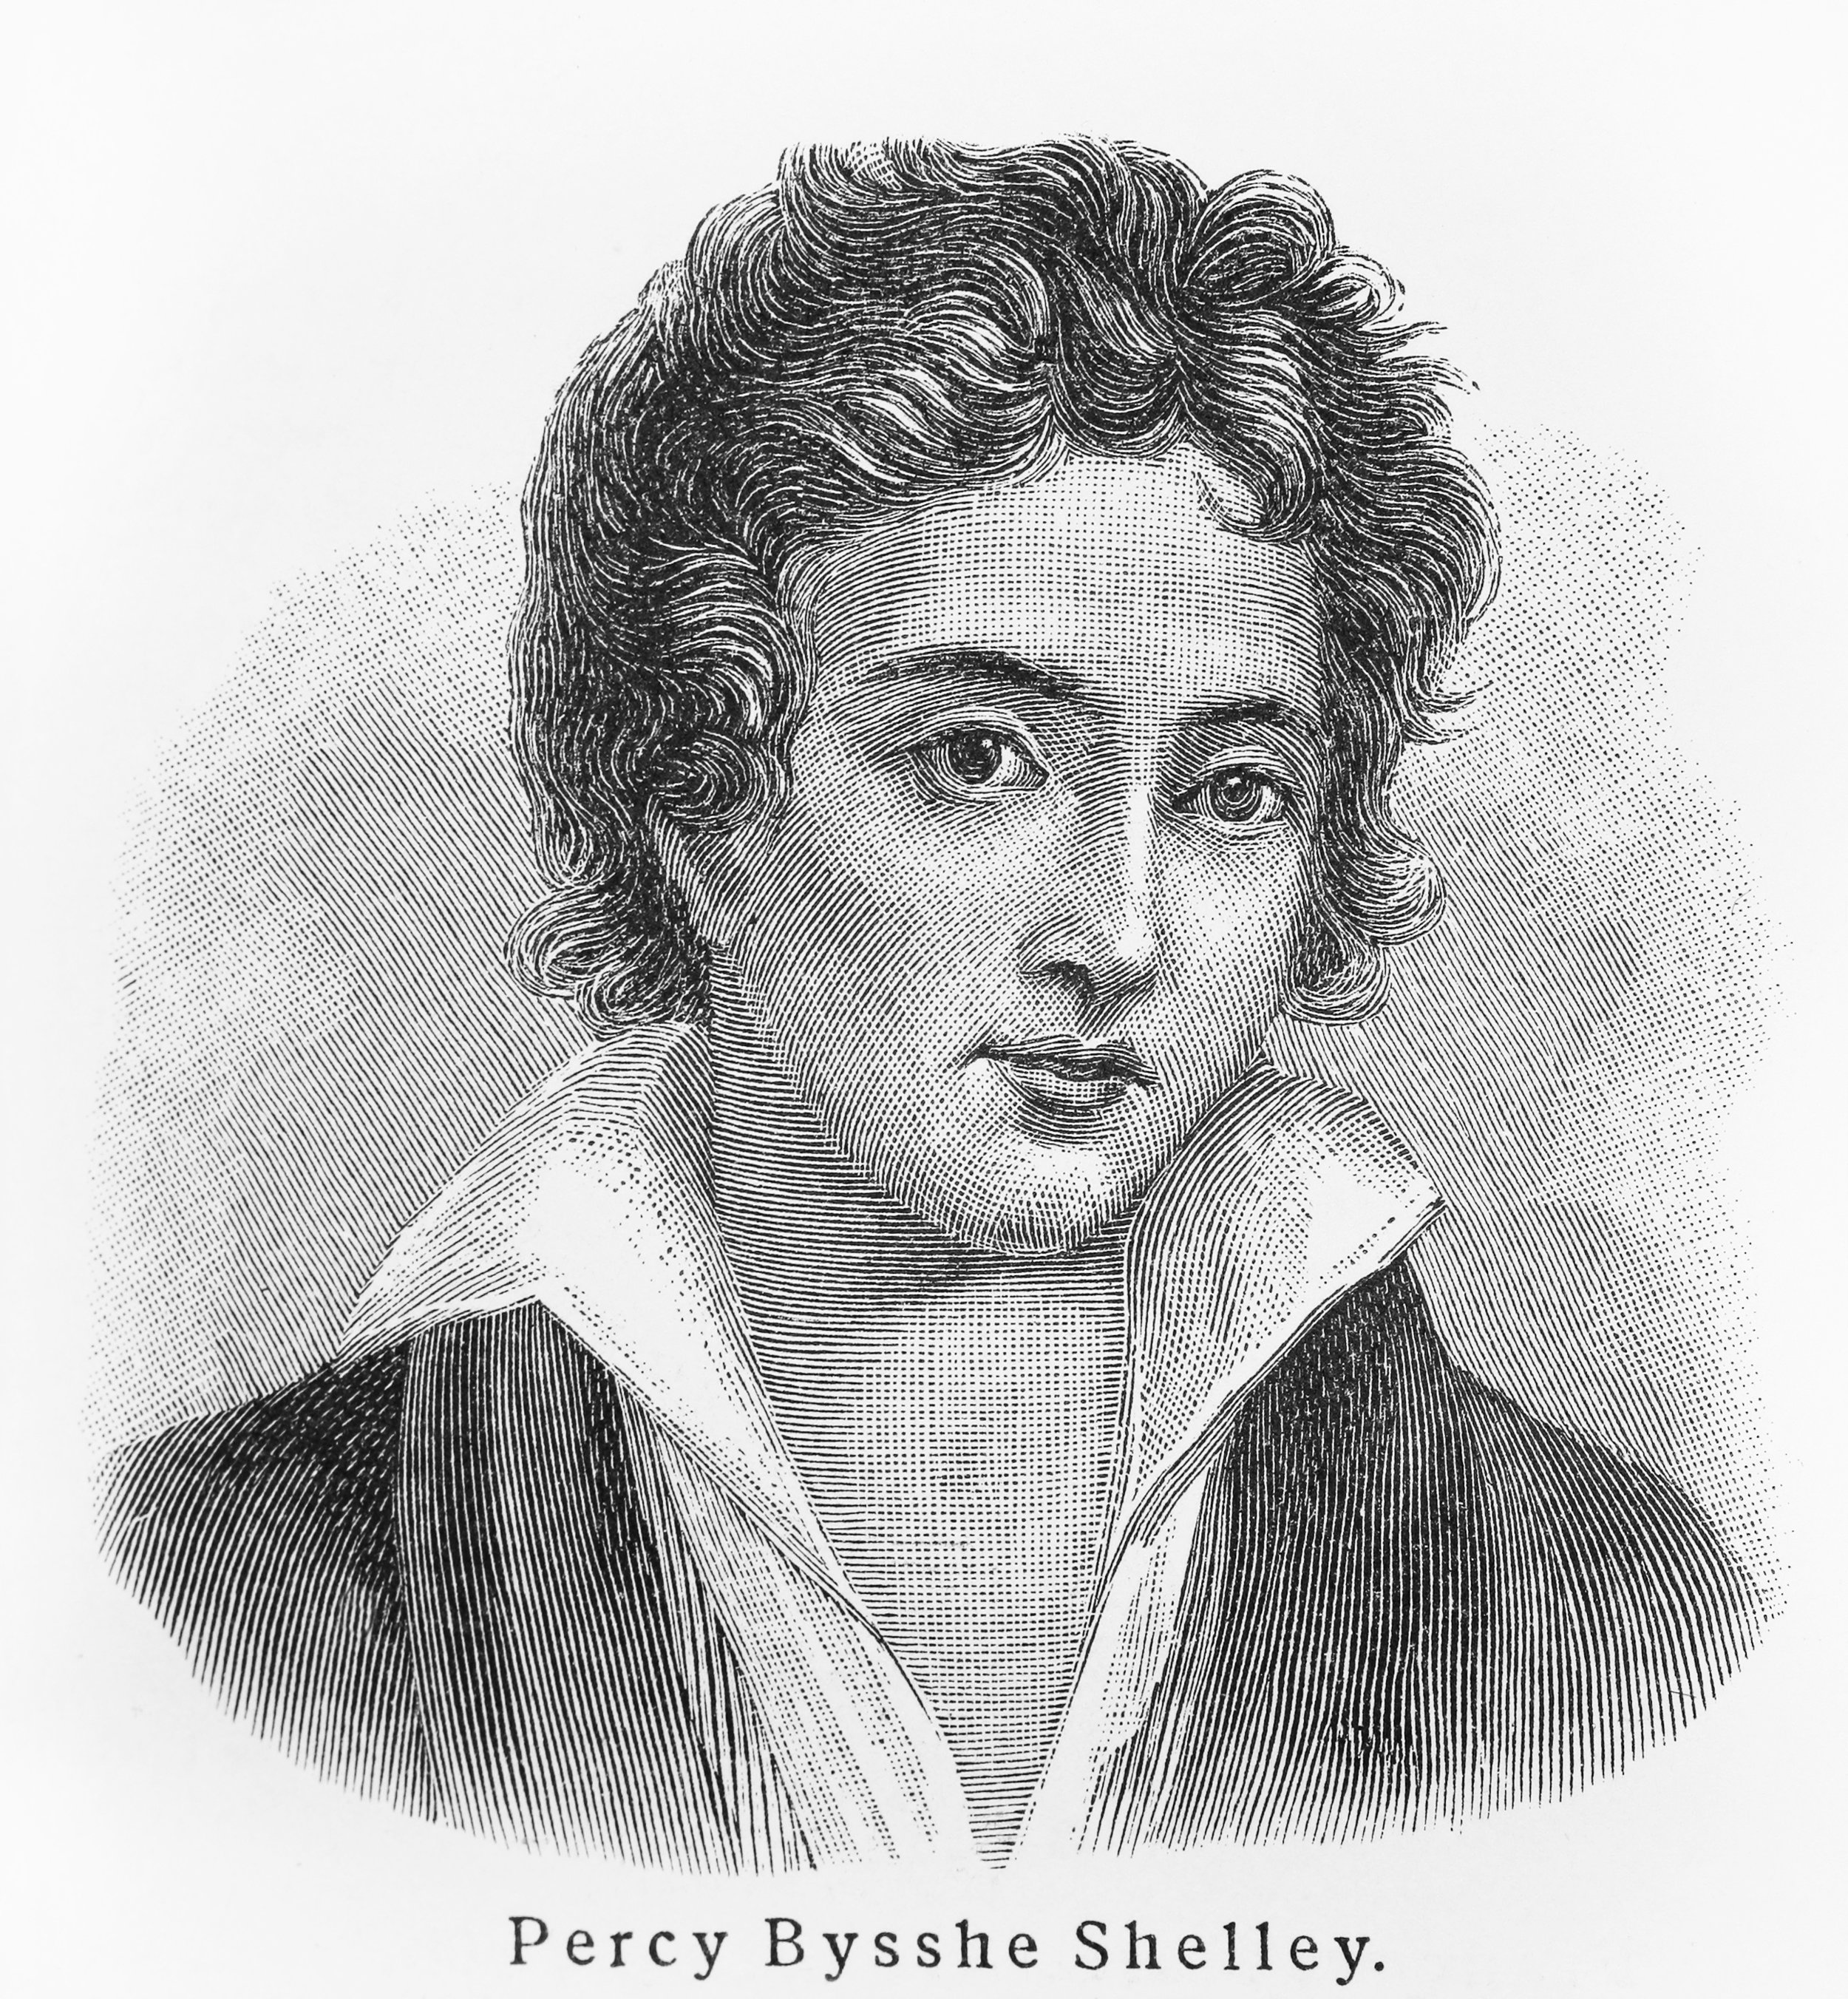 Percy Bysshe Shelley  is a well-known poet of the English Romantic era, who lived from 1792 to 1822.